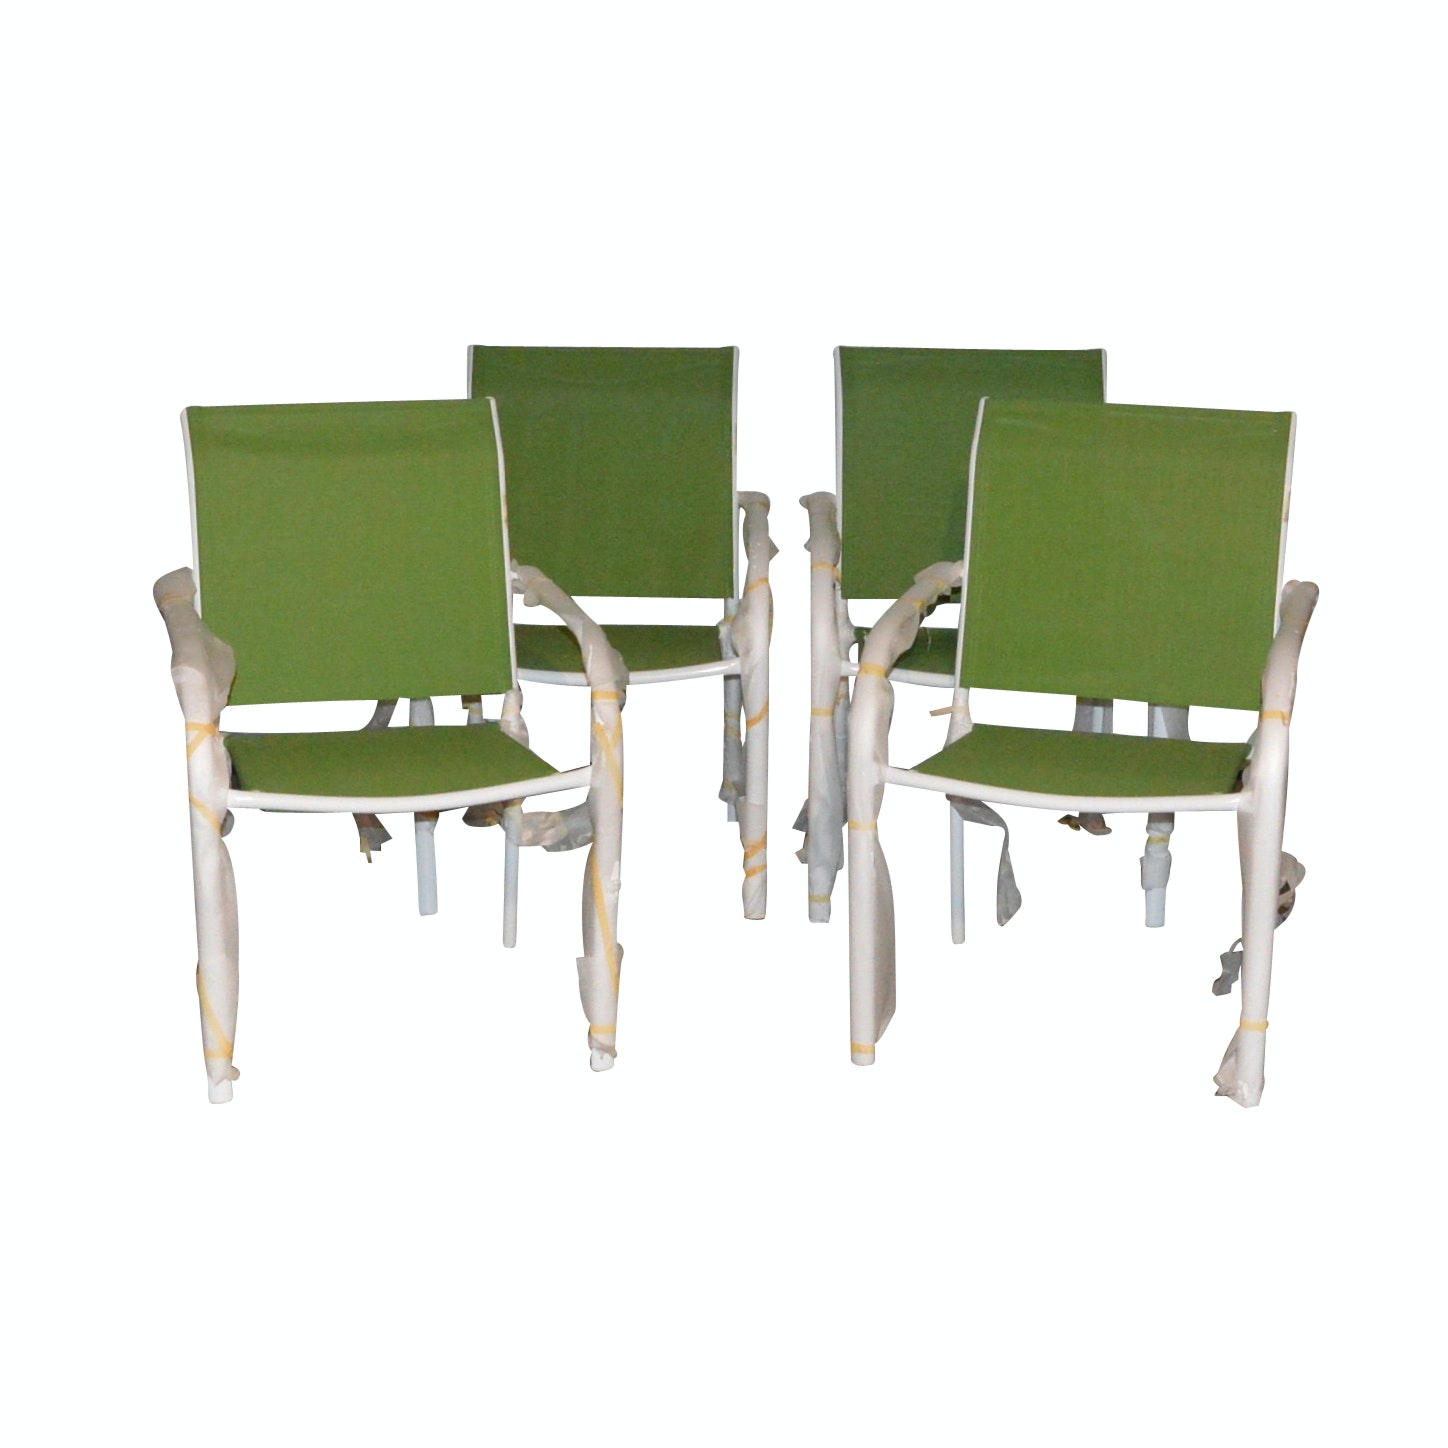 Four Aluminum Frame Patio Chairs